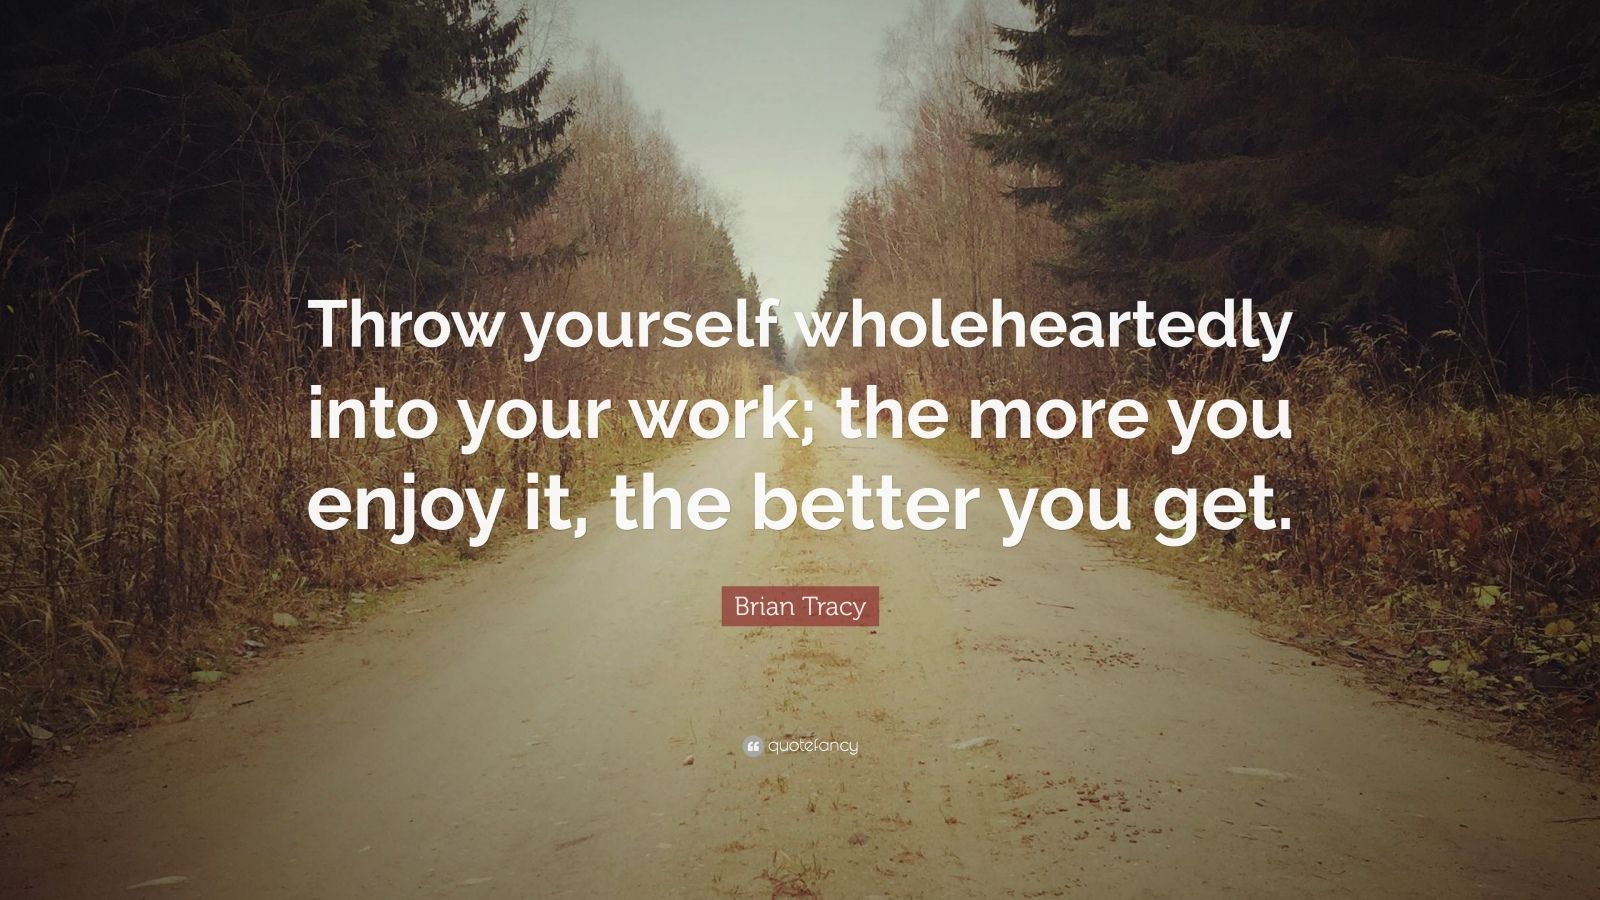 """Brian Tracy Quote: """"Throw yourself wholeheartedly into your work; the more you enjoy it, the better you get."""""""